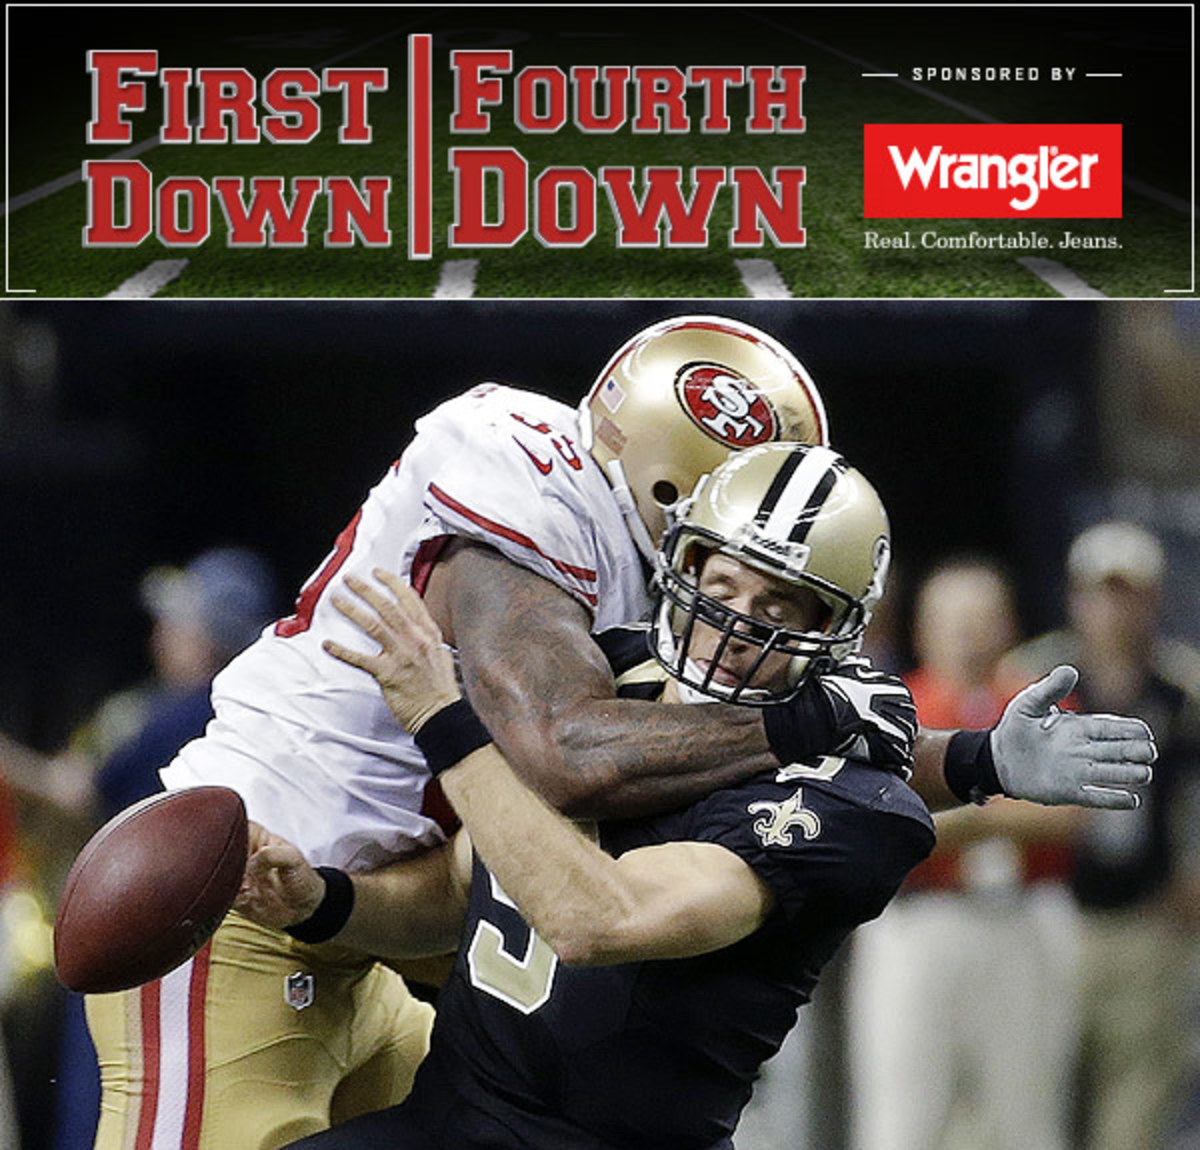 Ahmad Brooks (left) called the penalty on Drew Brees 'b.s.,' saying it cost the 49ers the game